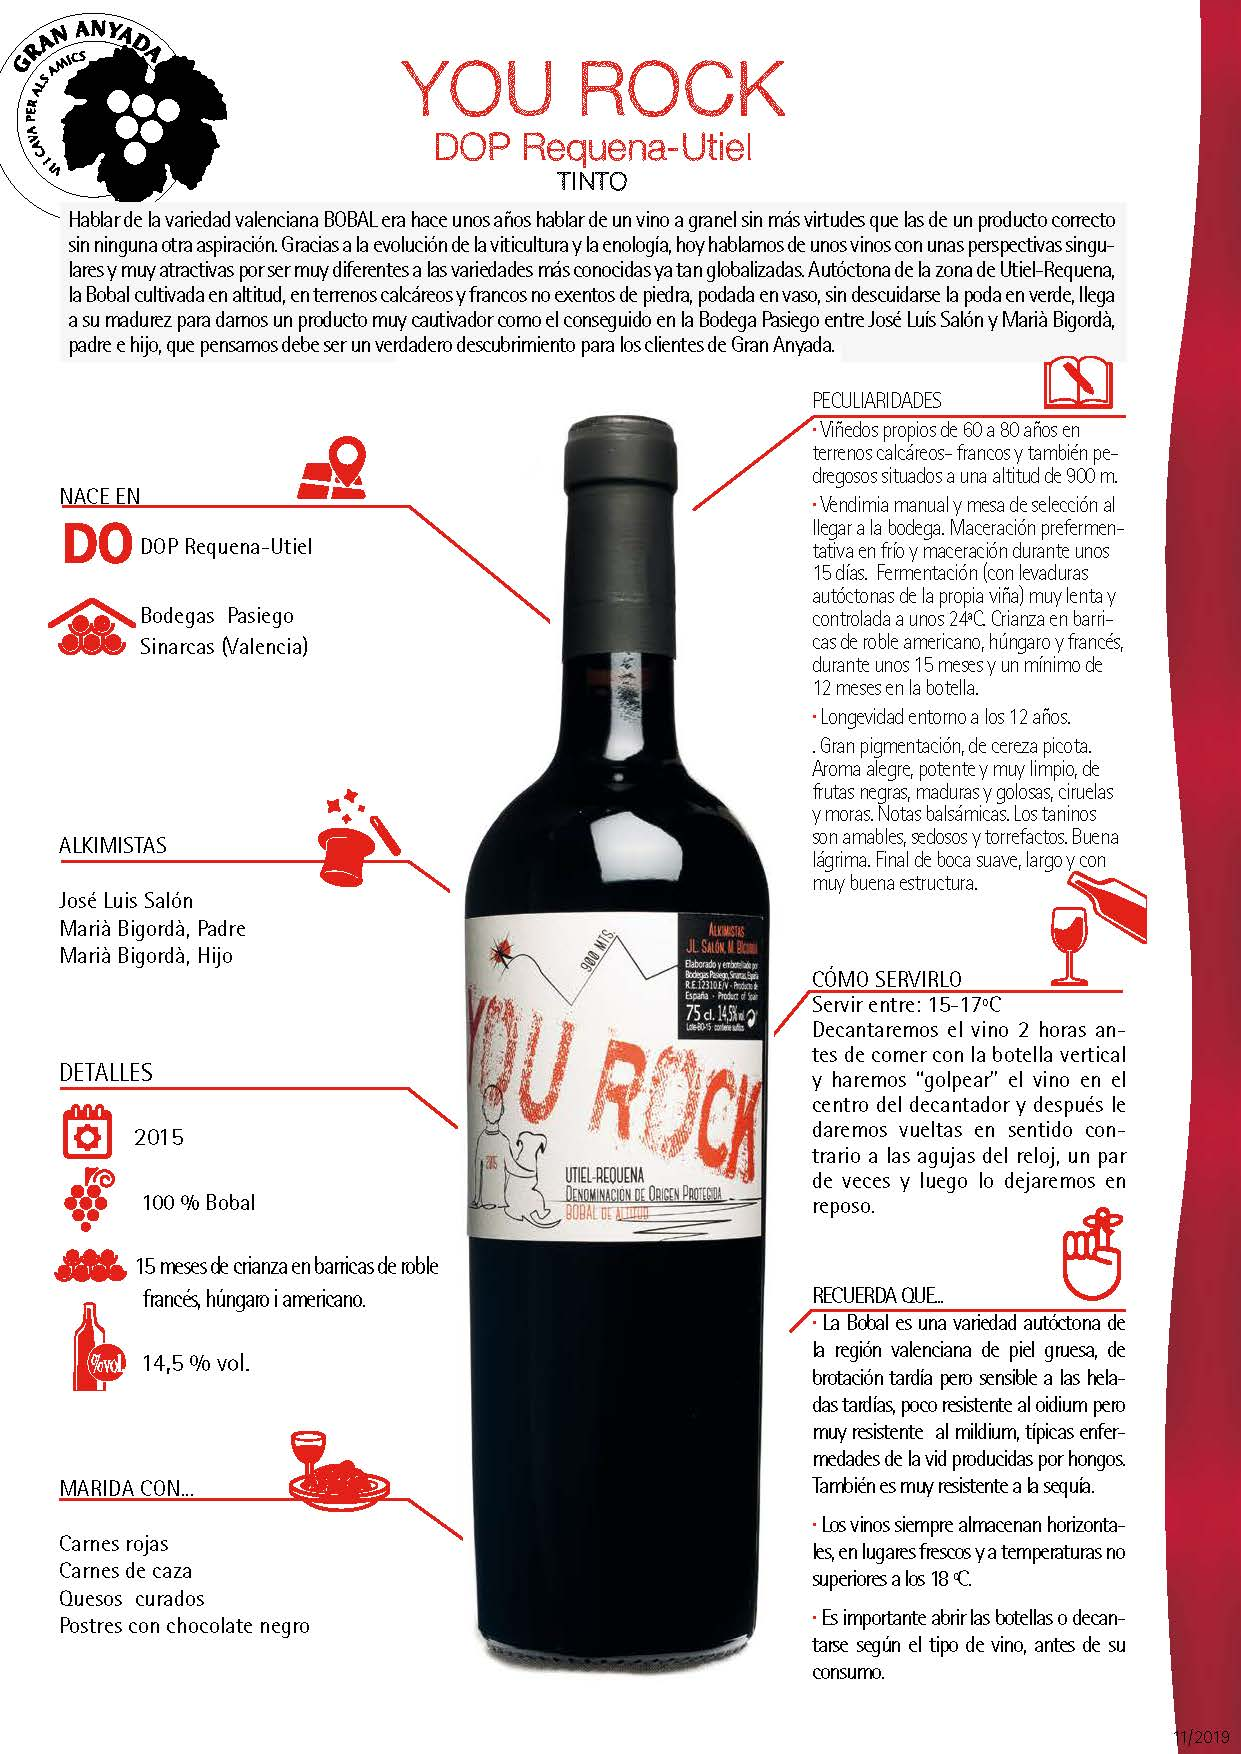 YOU ROCK DOP Requena-Utiel  tinto